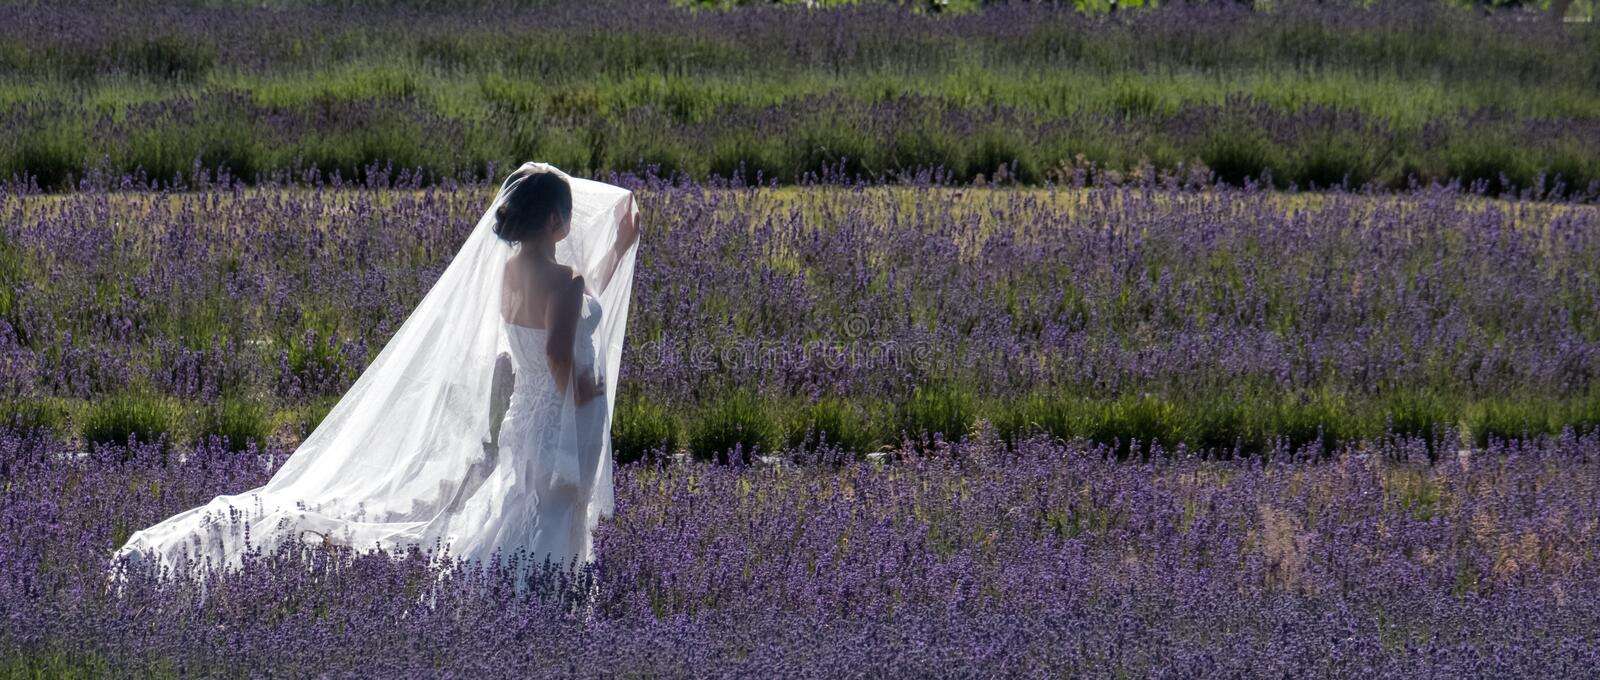 Romantic bride wearing white dress and veil catches the light standing amongst the rows of lavender at Snowshill Lavender, UK royalty free stock image